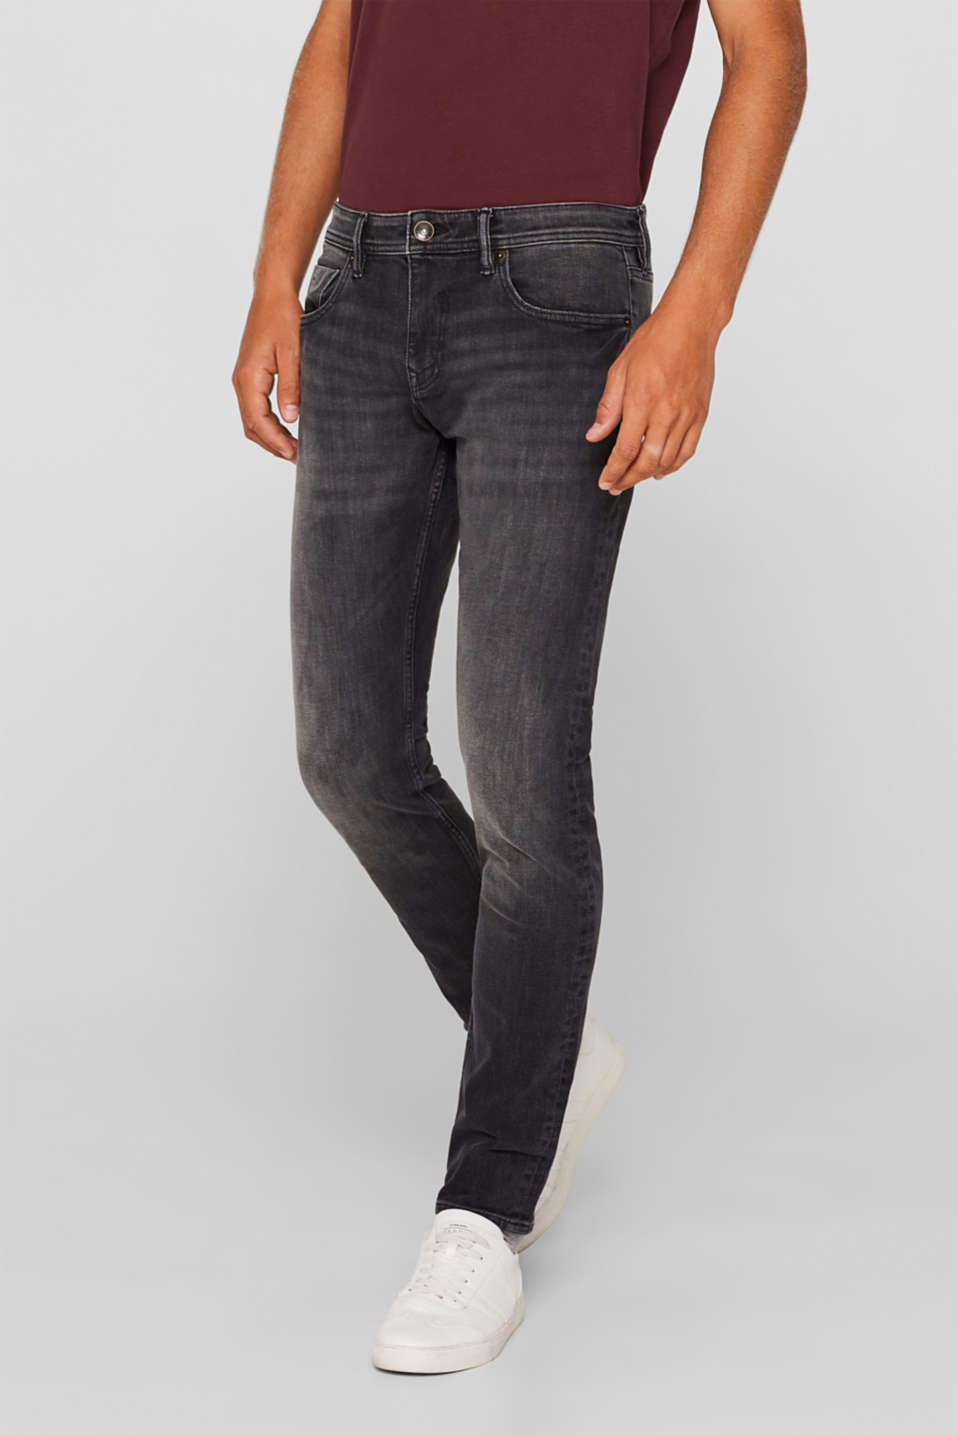 Esprit - Dynamic denim met veel comfortabele stretch